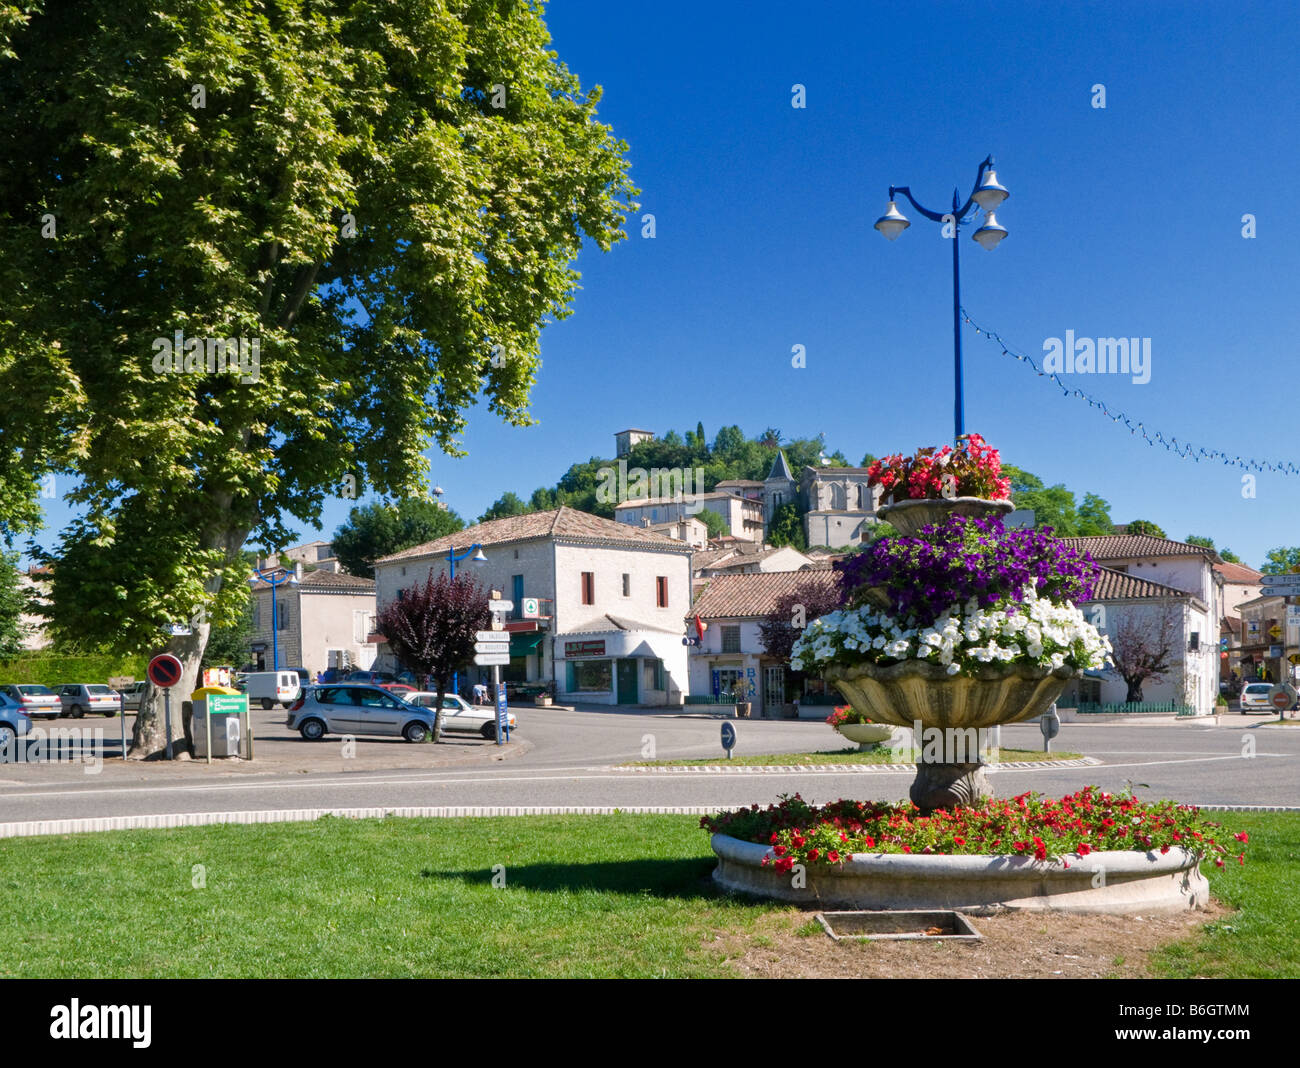 Town centre in Montaigu de Quercy, Tarn et Garonne, Southwest France, Europe - Stock Image